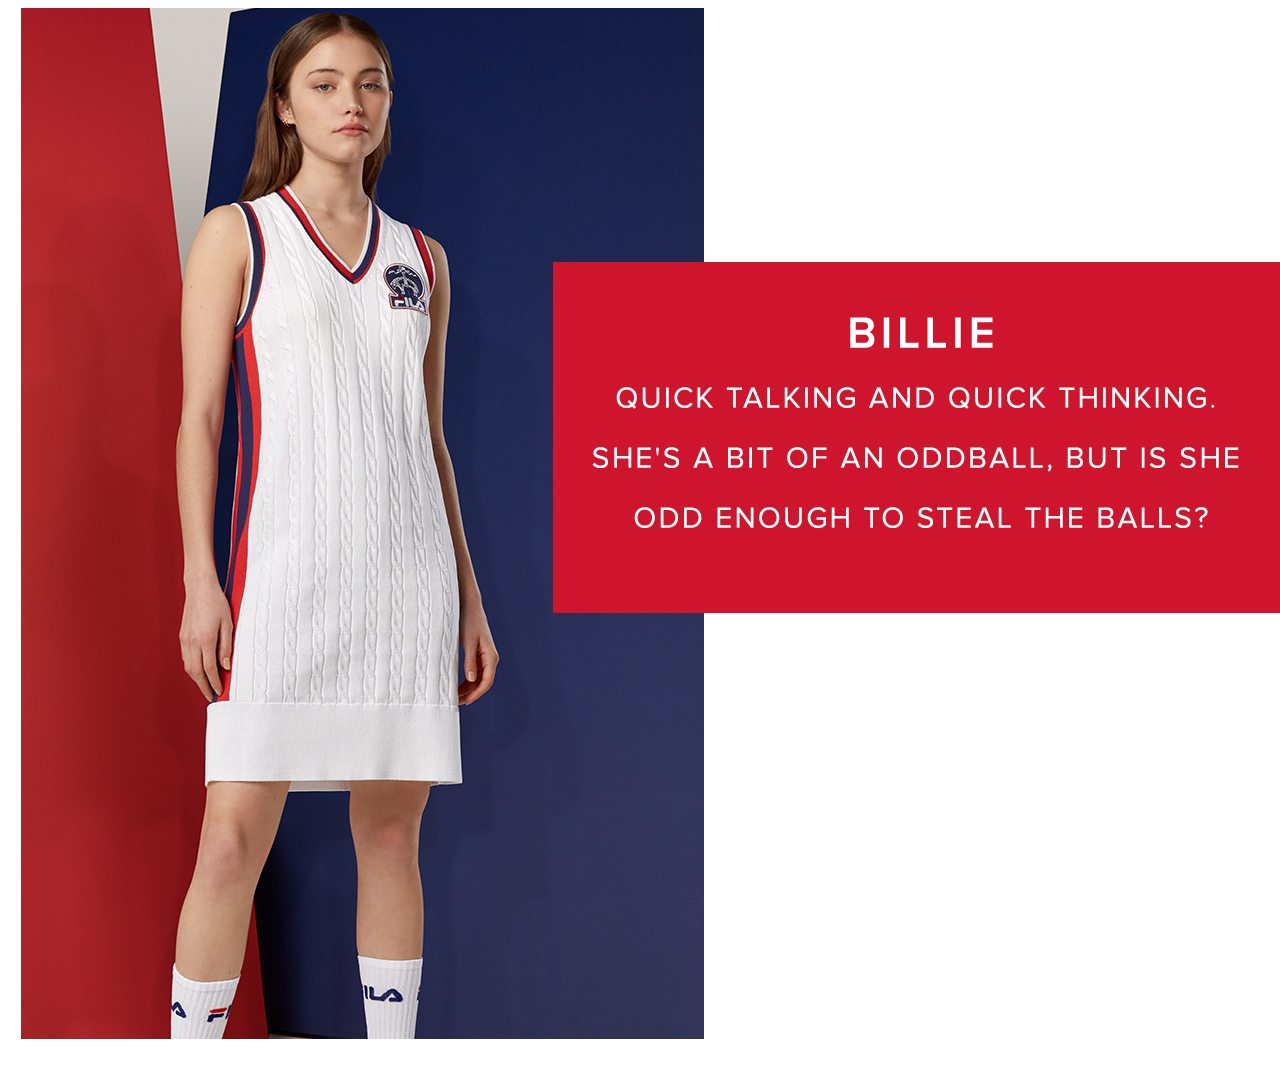 Billie Quick talking and quick thinking. She's a bit of an oddball, but is she odd enough to steal the balls?